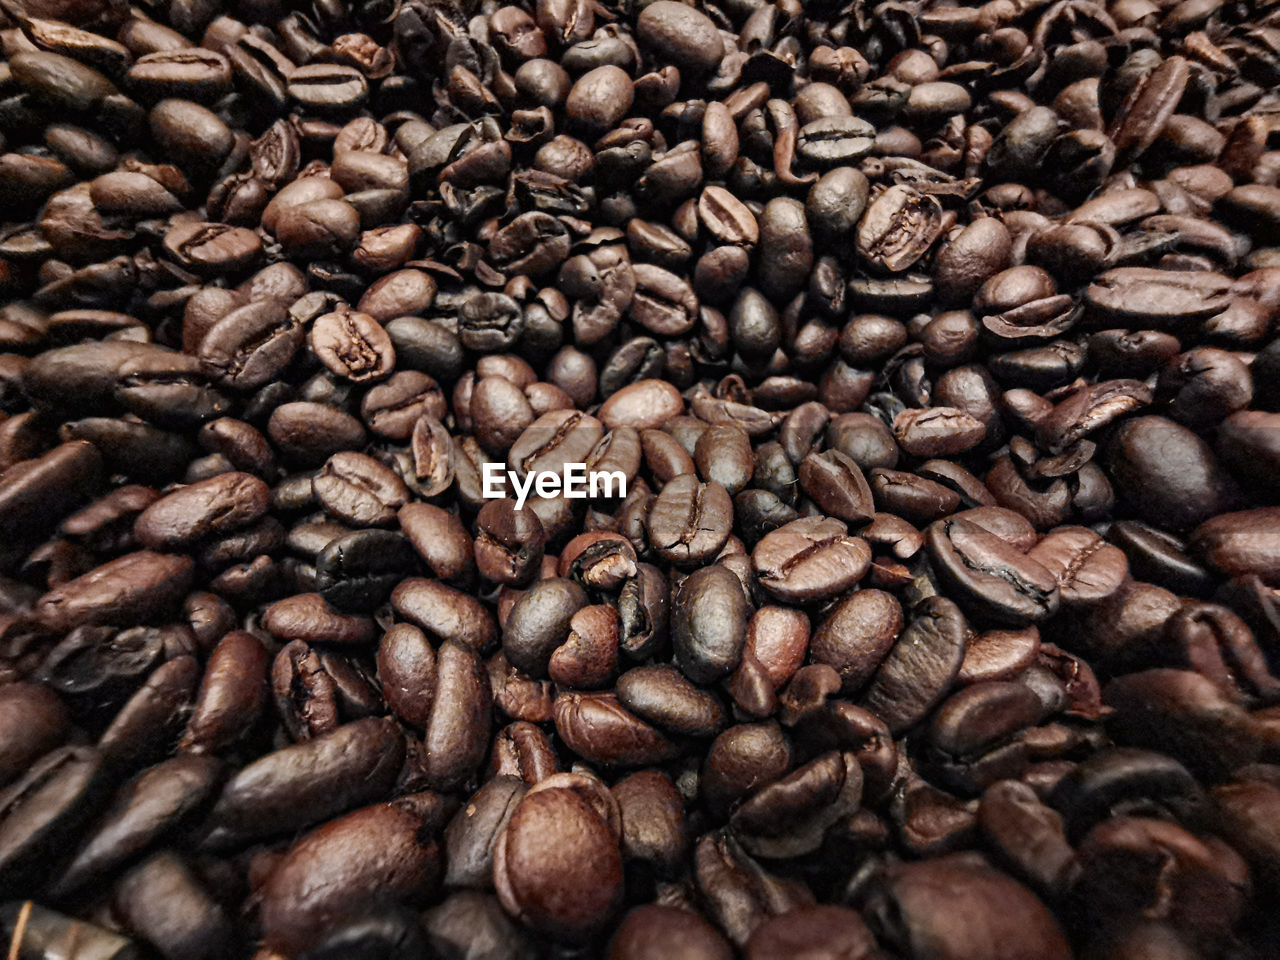 FULL FRAME SHOT OF COFFEE BEANS IN BACKGROUND